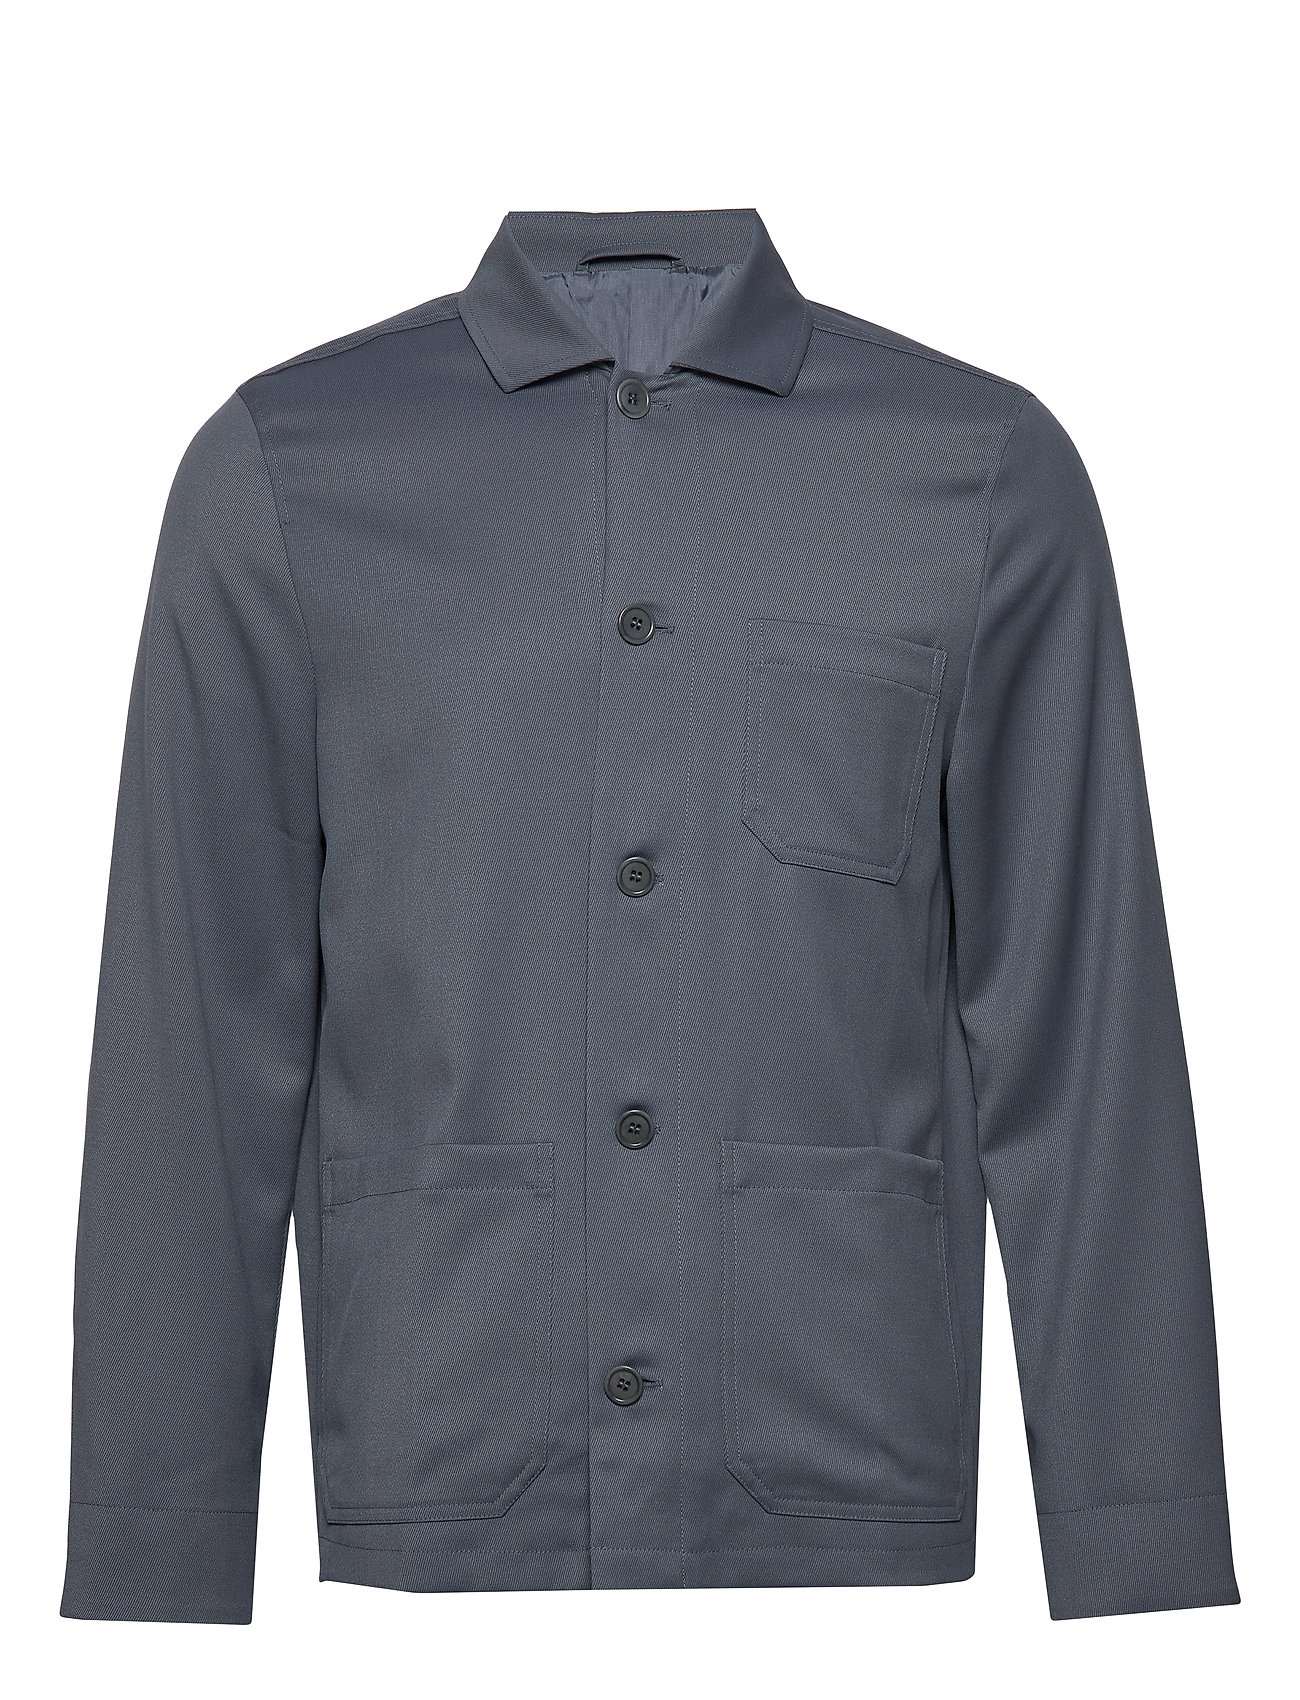 Filippa K M. Louis Gabardine Jacket - BLUE GREY